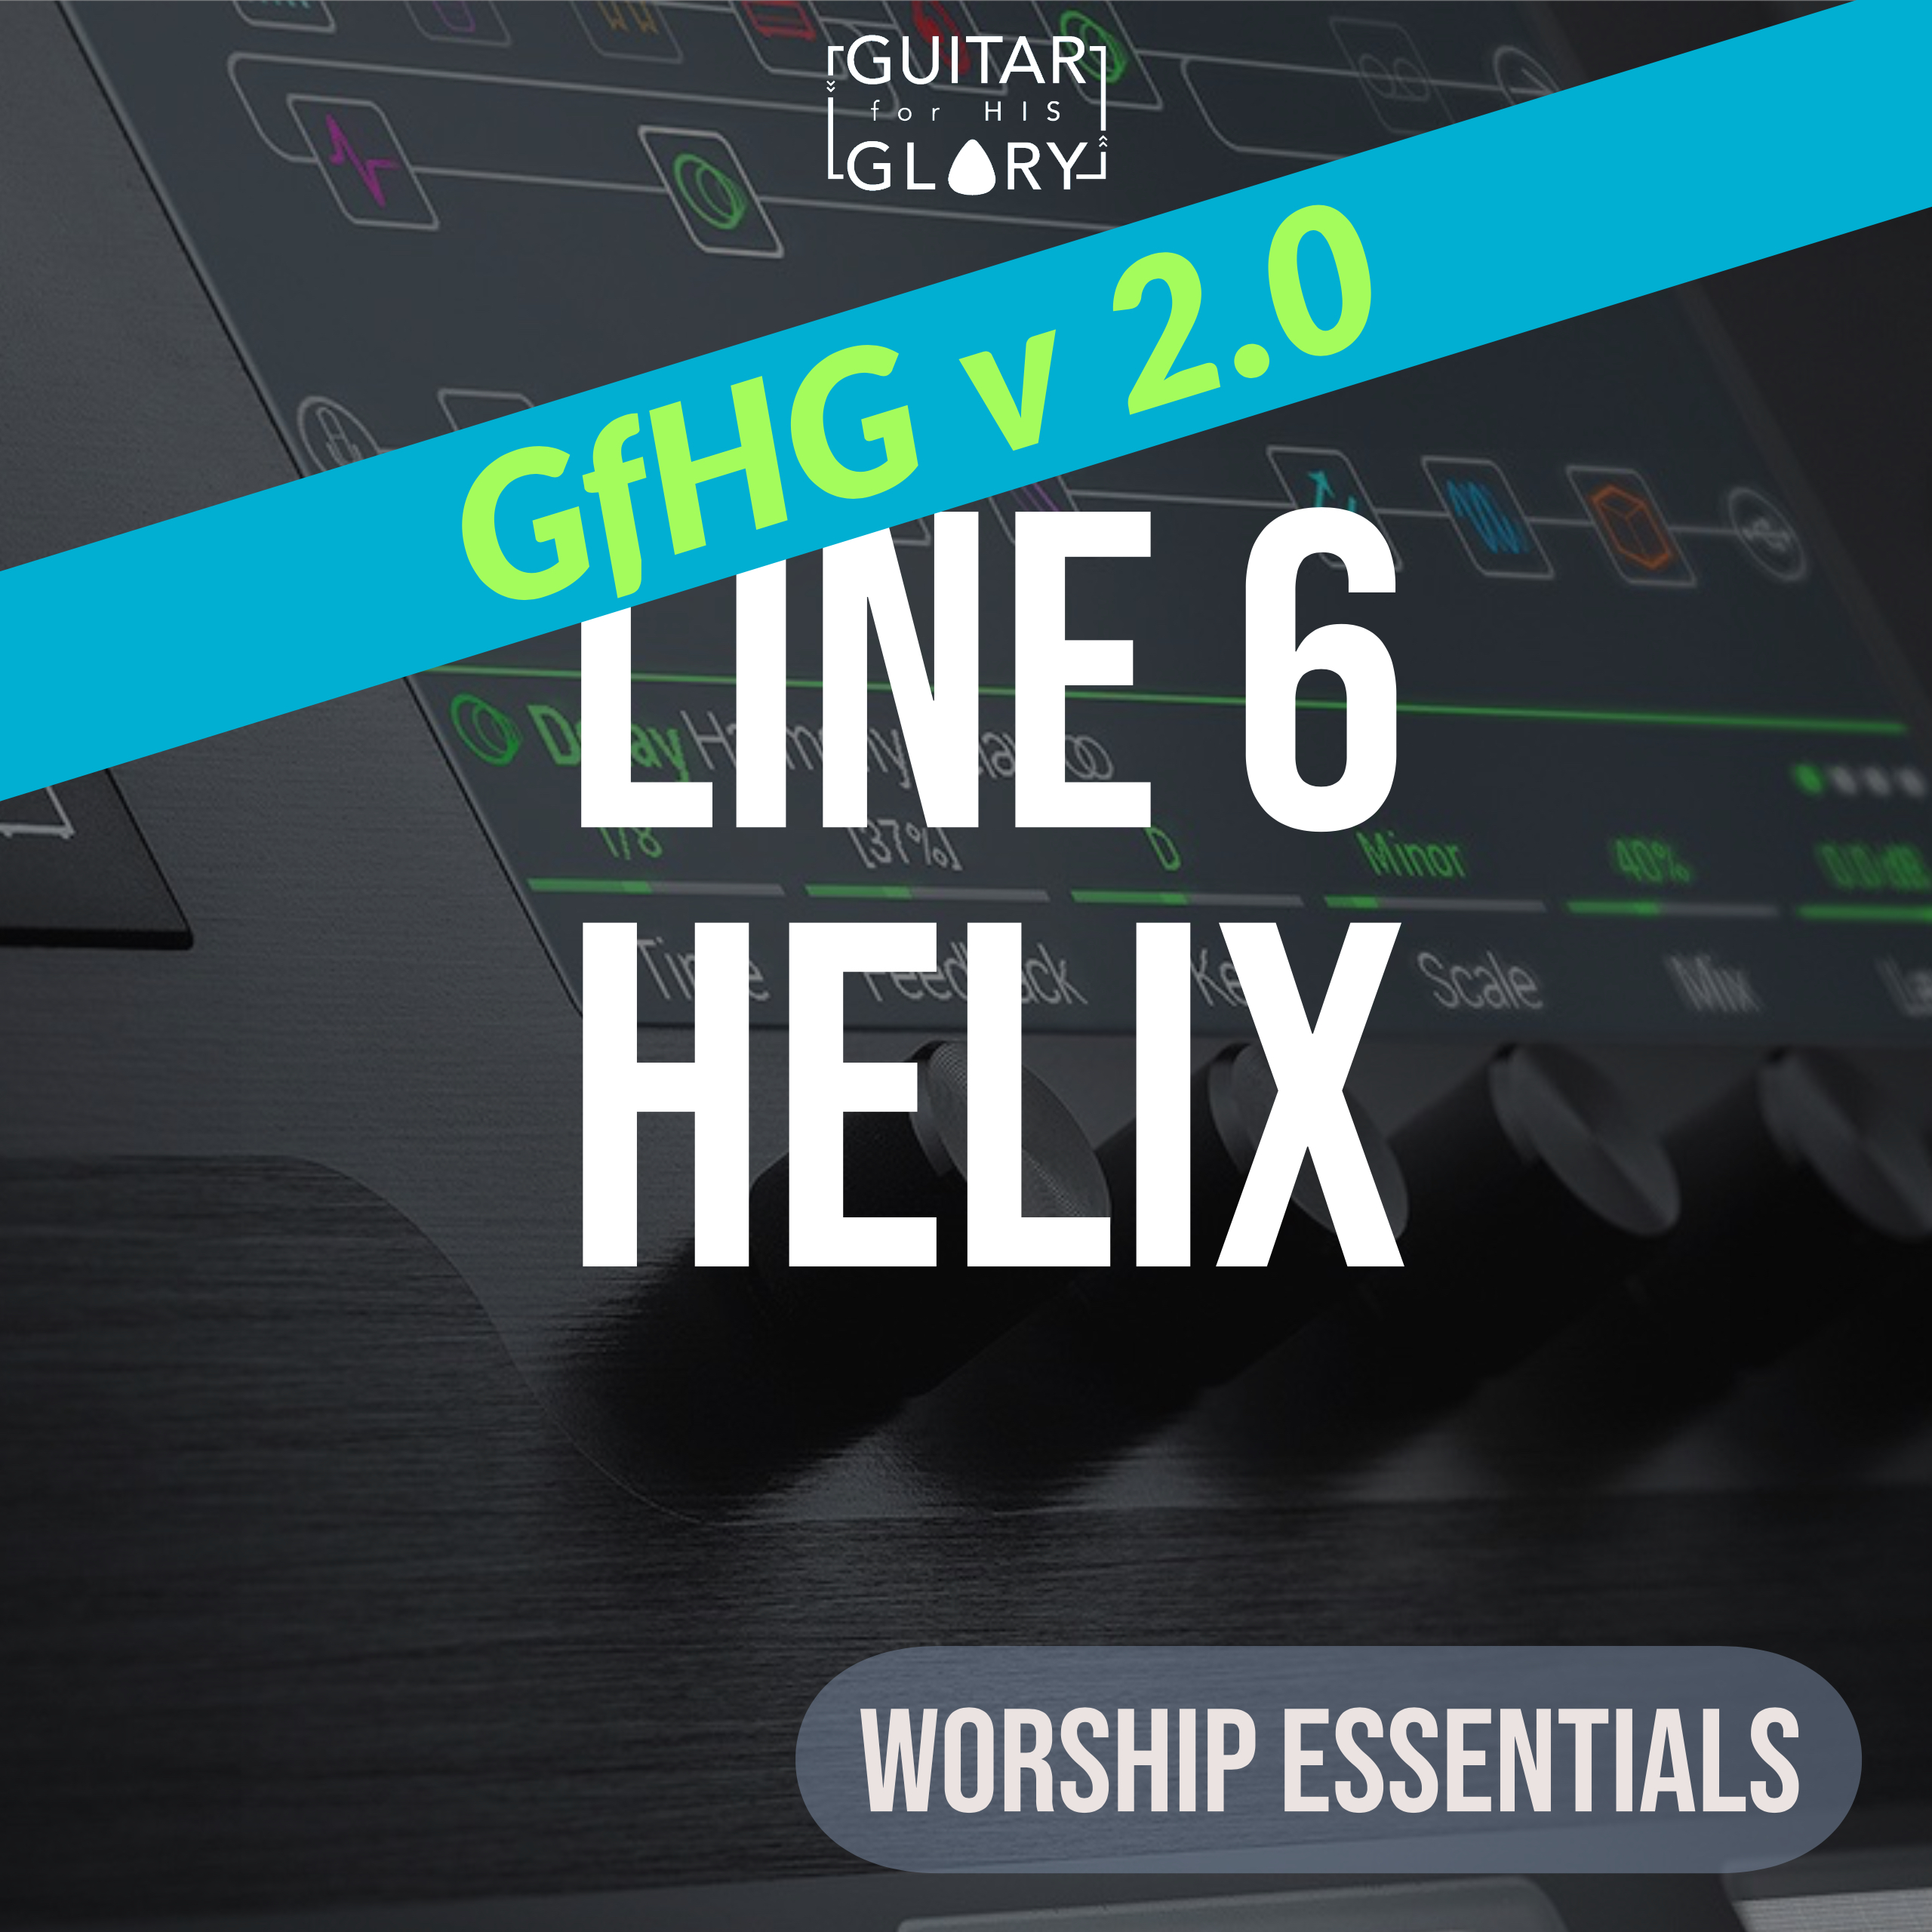 Line 6 Helix Worship Essentials GfHG Version 2 (4 Presets)